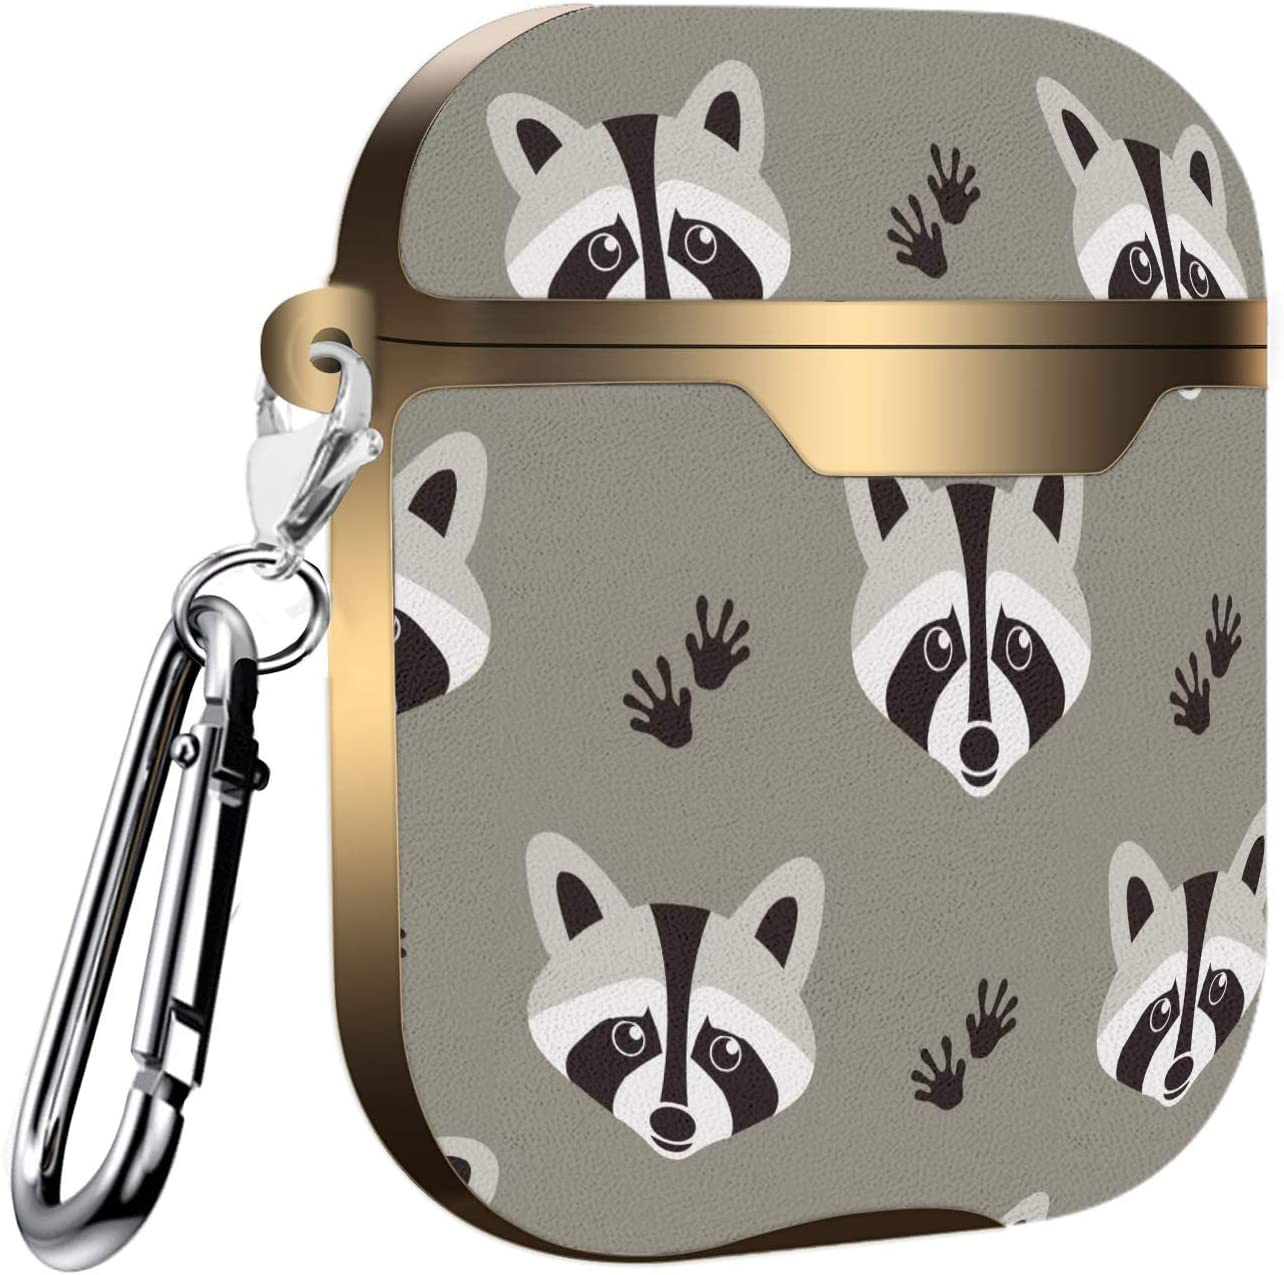 Raccoon Pattern in Flat Graphics Slim Form Fitted Printing Pattern Cover Case with Carabiner Compatible with Airpods 1 and AirPods 2